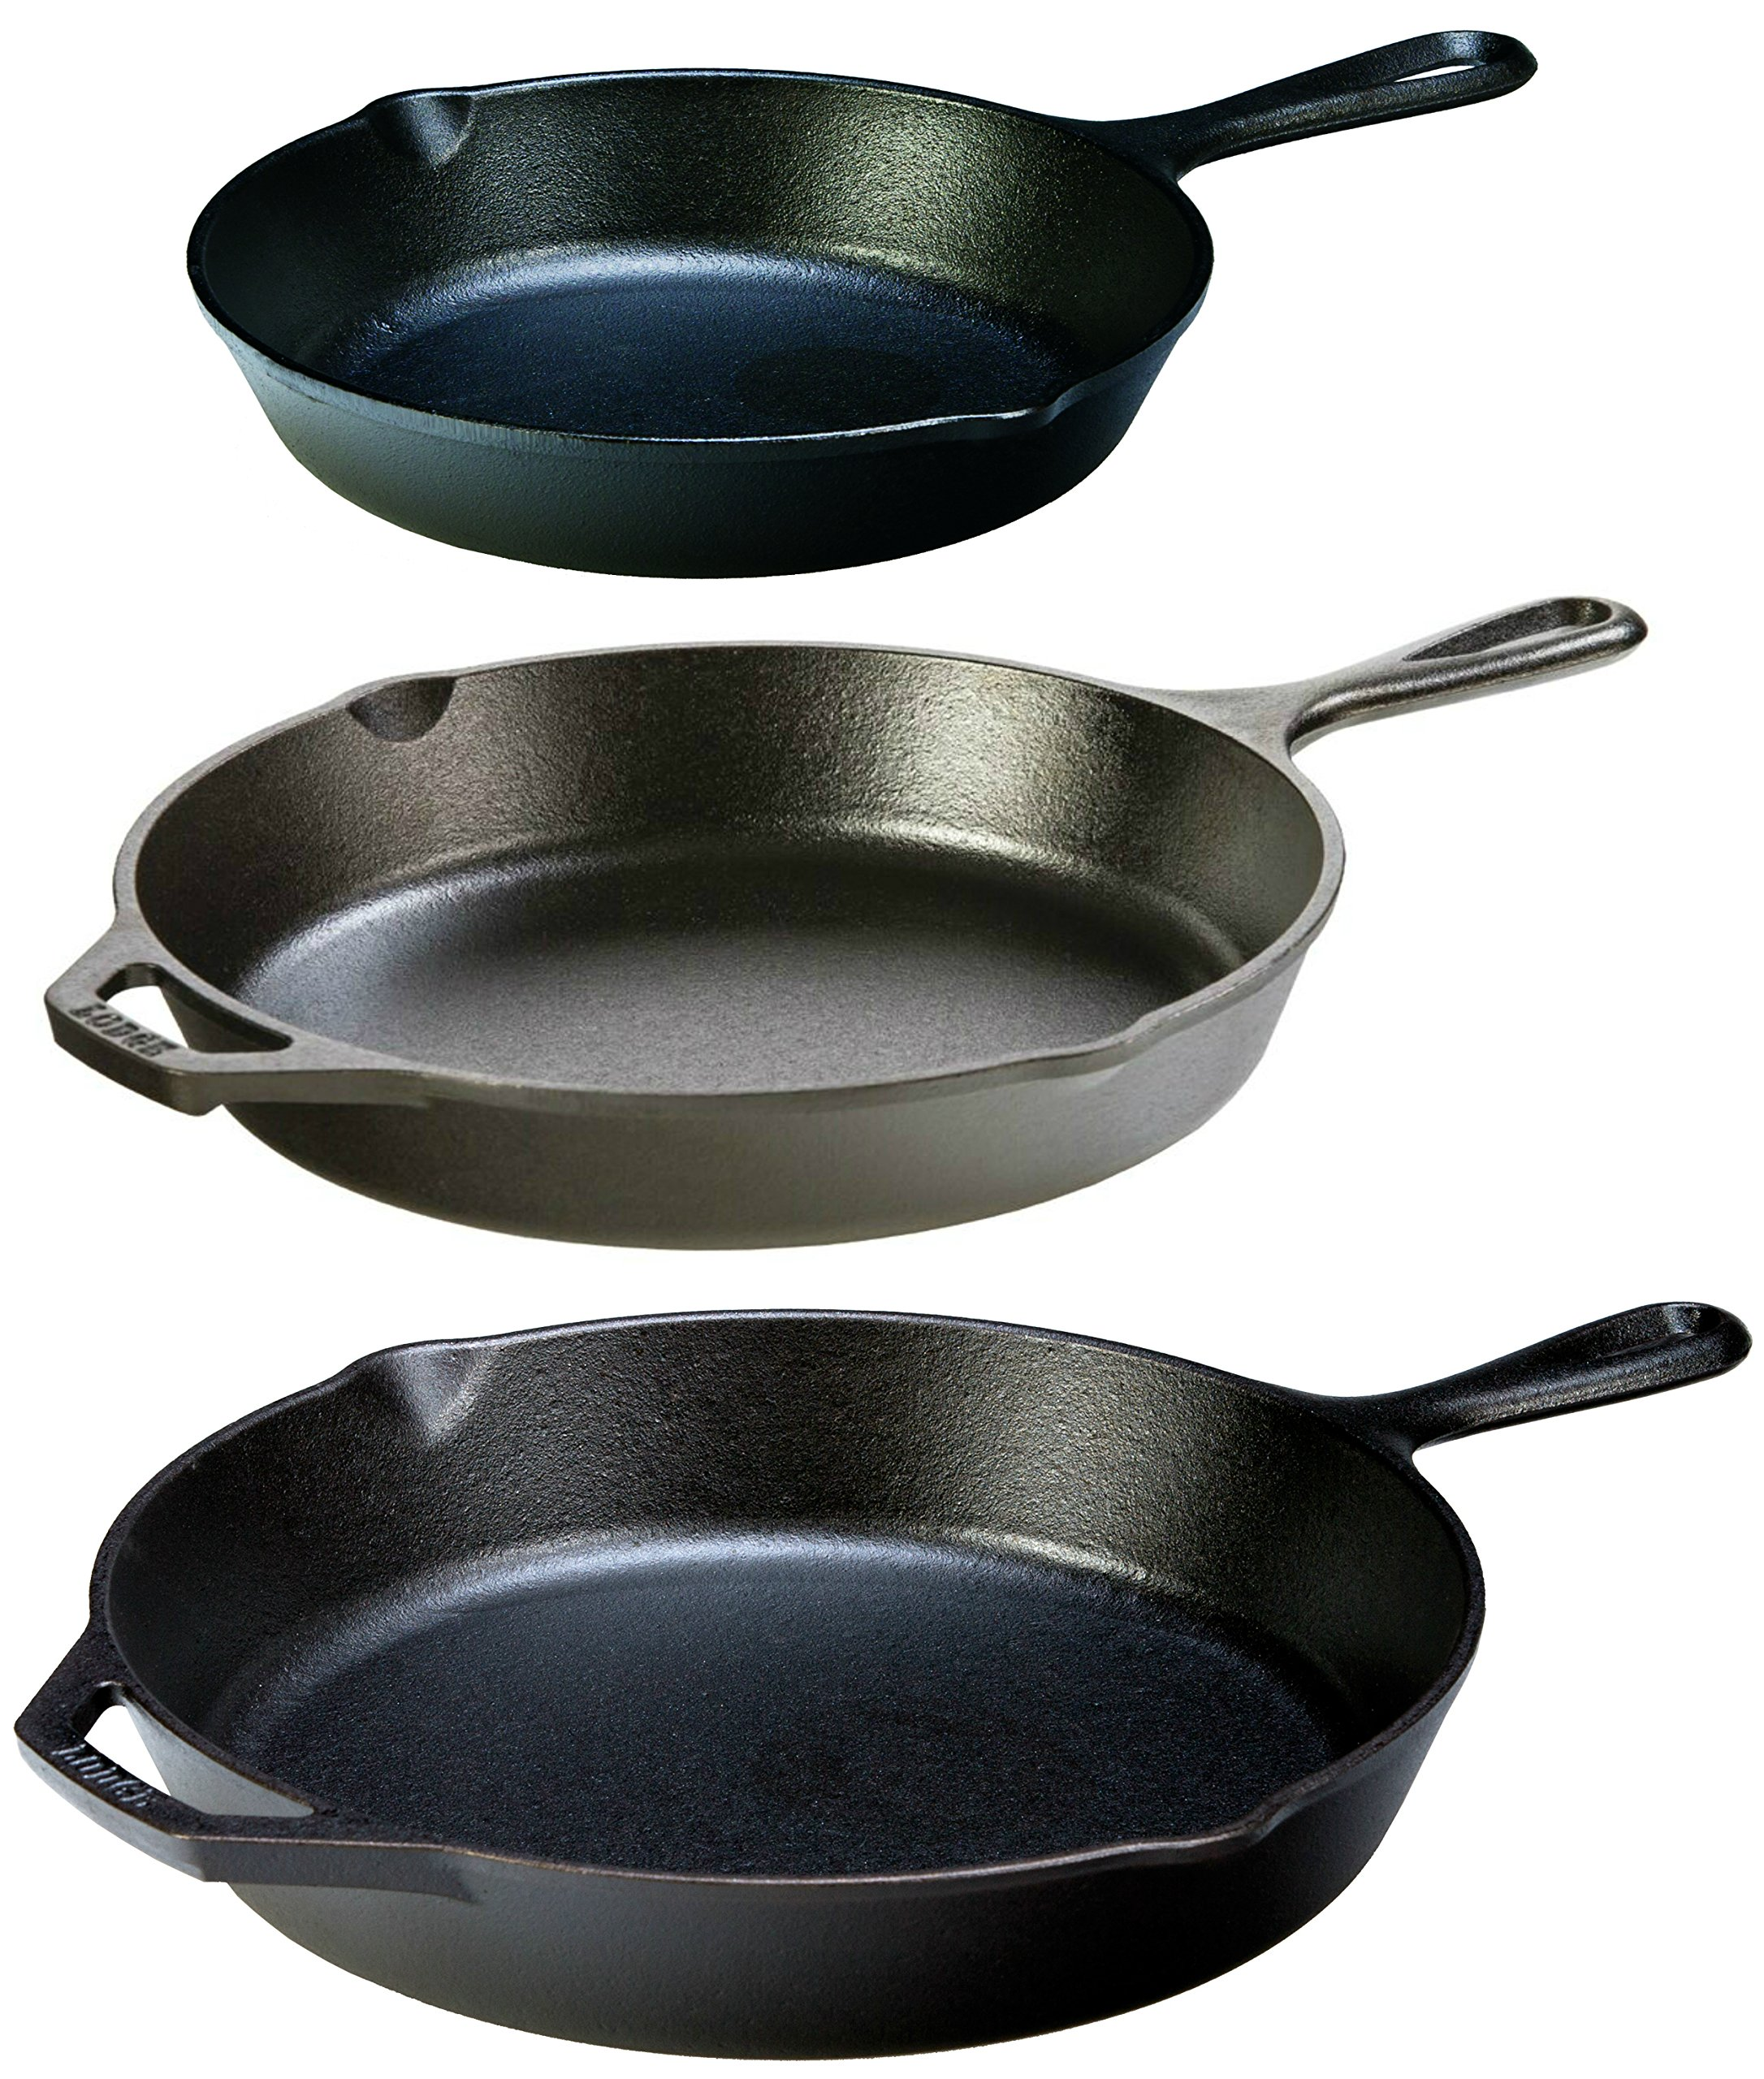 Lodge Seasoned Cast Iron 3 Skillet Bundle. 12 inches and 10.25 inches with 8 inch Set of 3 Cast Iron Frying Pans by Lodge